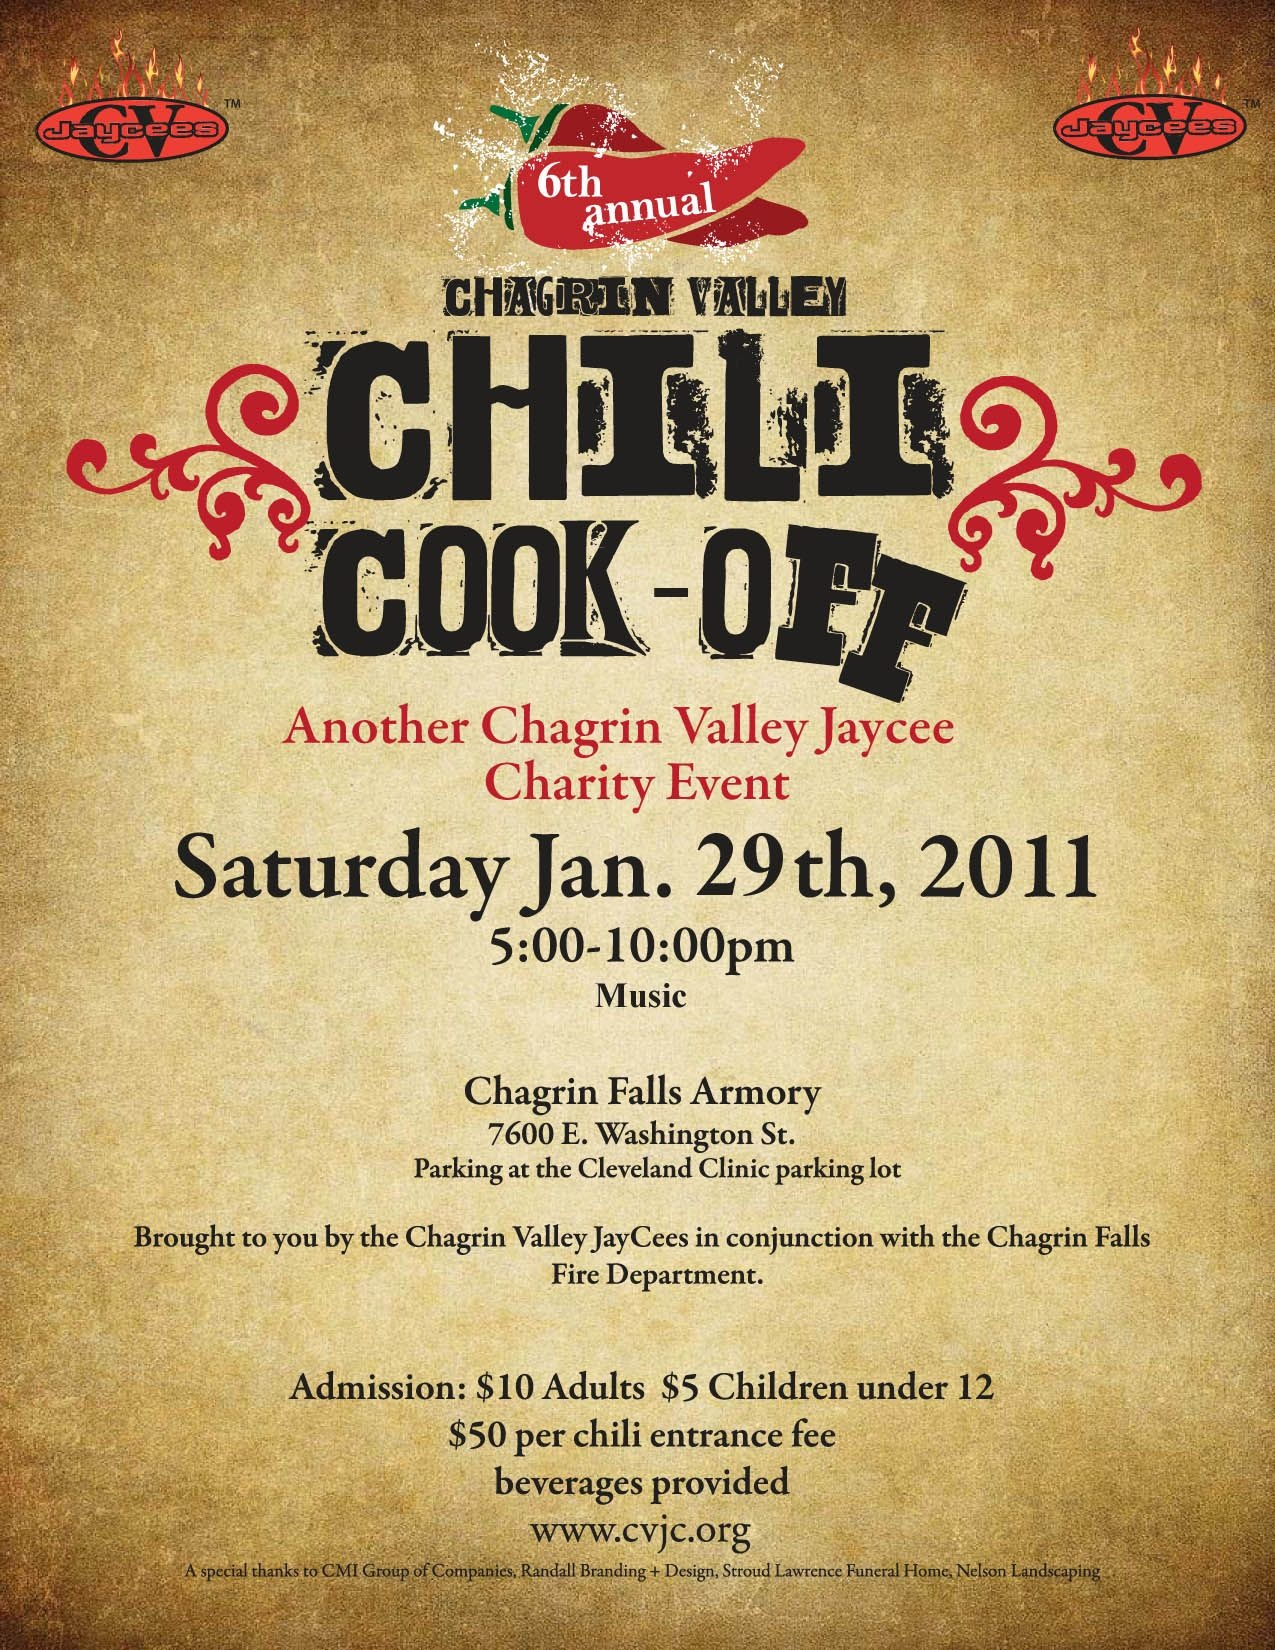 Chili Cook Off Flyer Template Free Printable - Wow - Image - Free Printable Fundraiser Flyer Templates